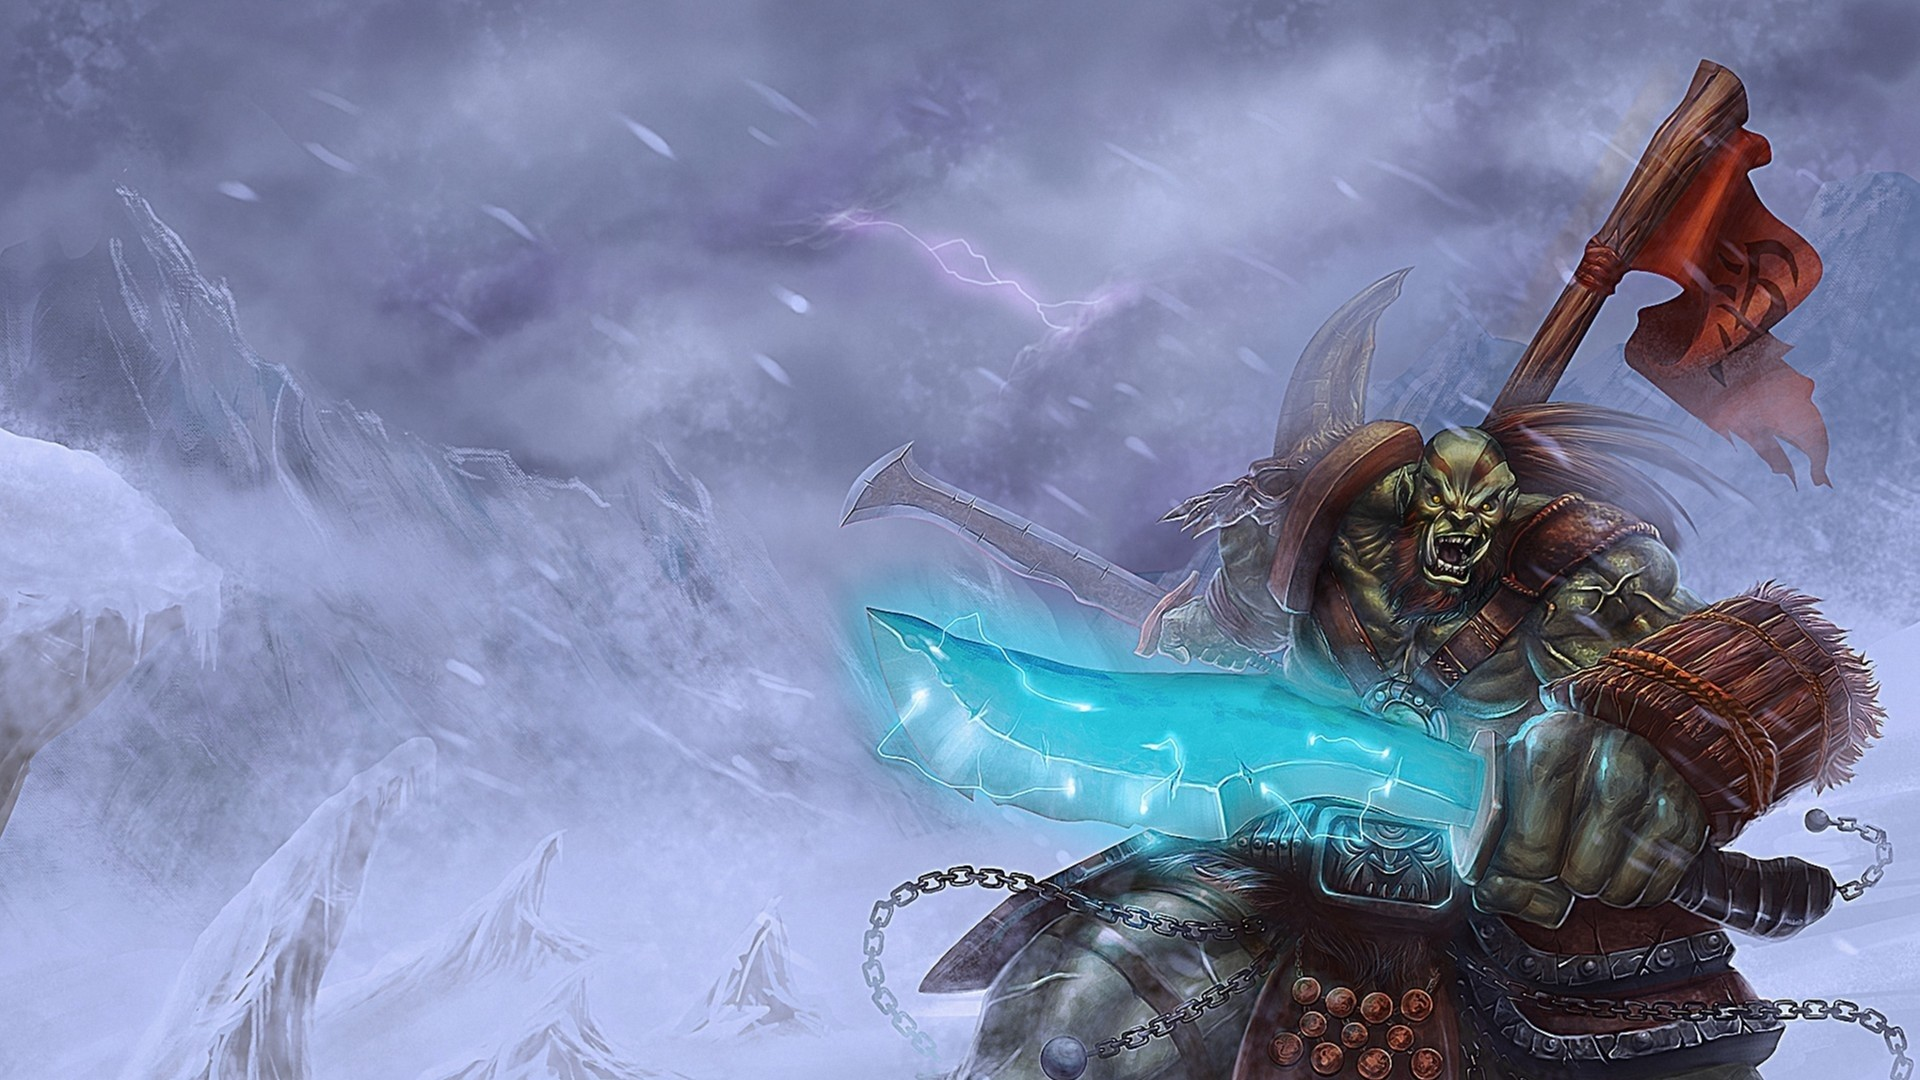 1920x1080 Preview wallpaper world of warcraft, orc, banner, snow, sword